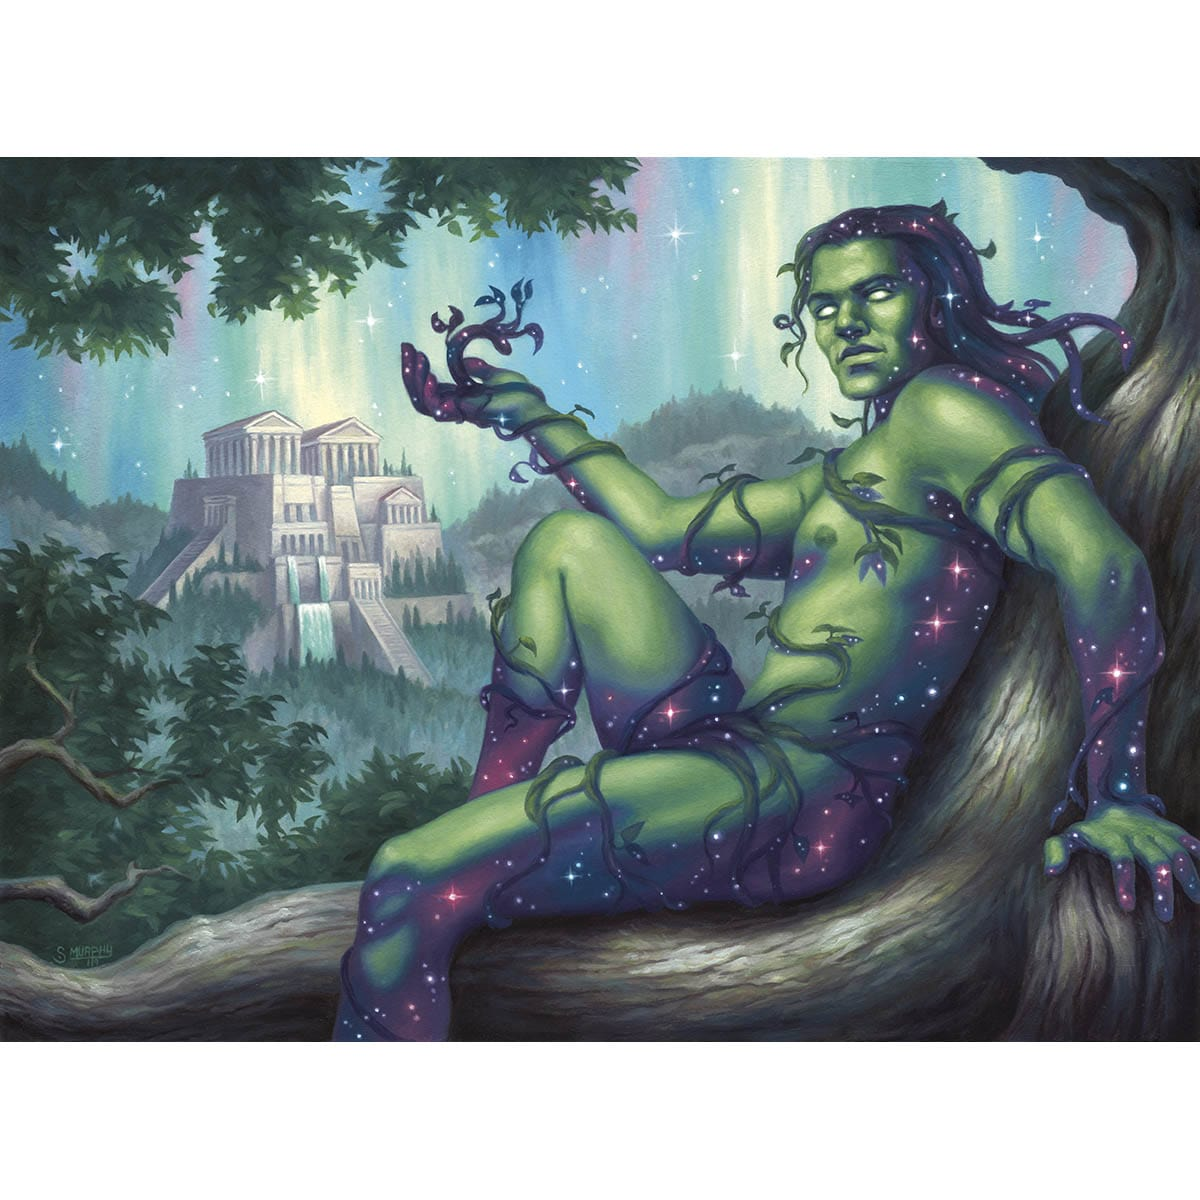 Dryad of the Ilysian Grove Print - Print - Original Magic Art - Accessories for Magic the Gathering and other card games